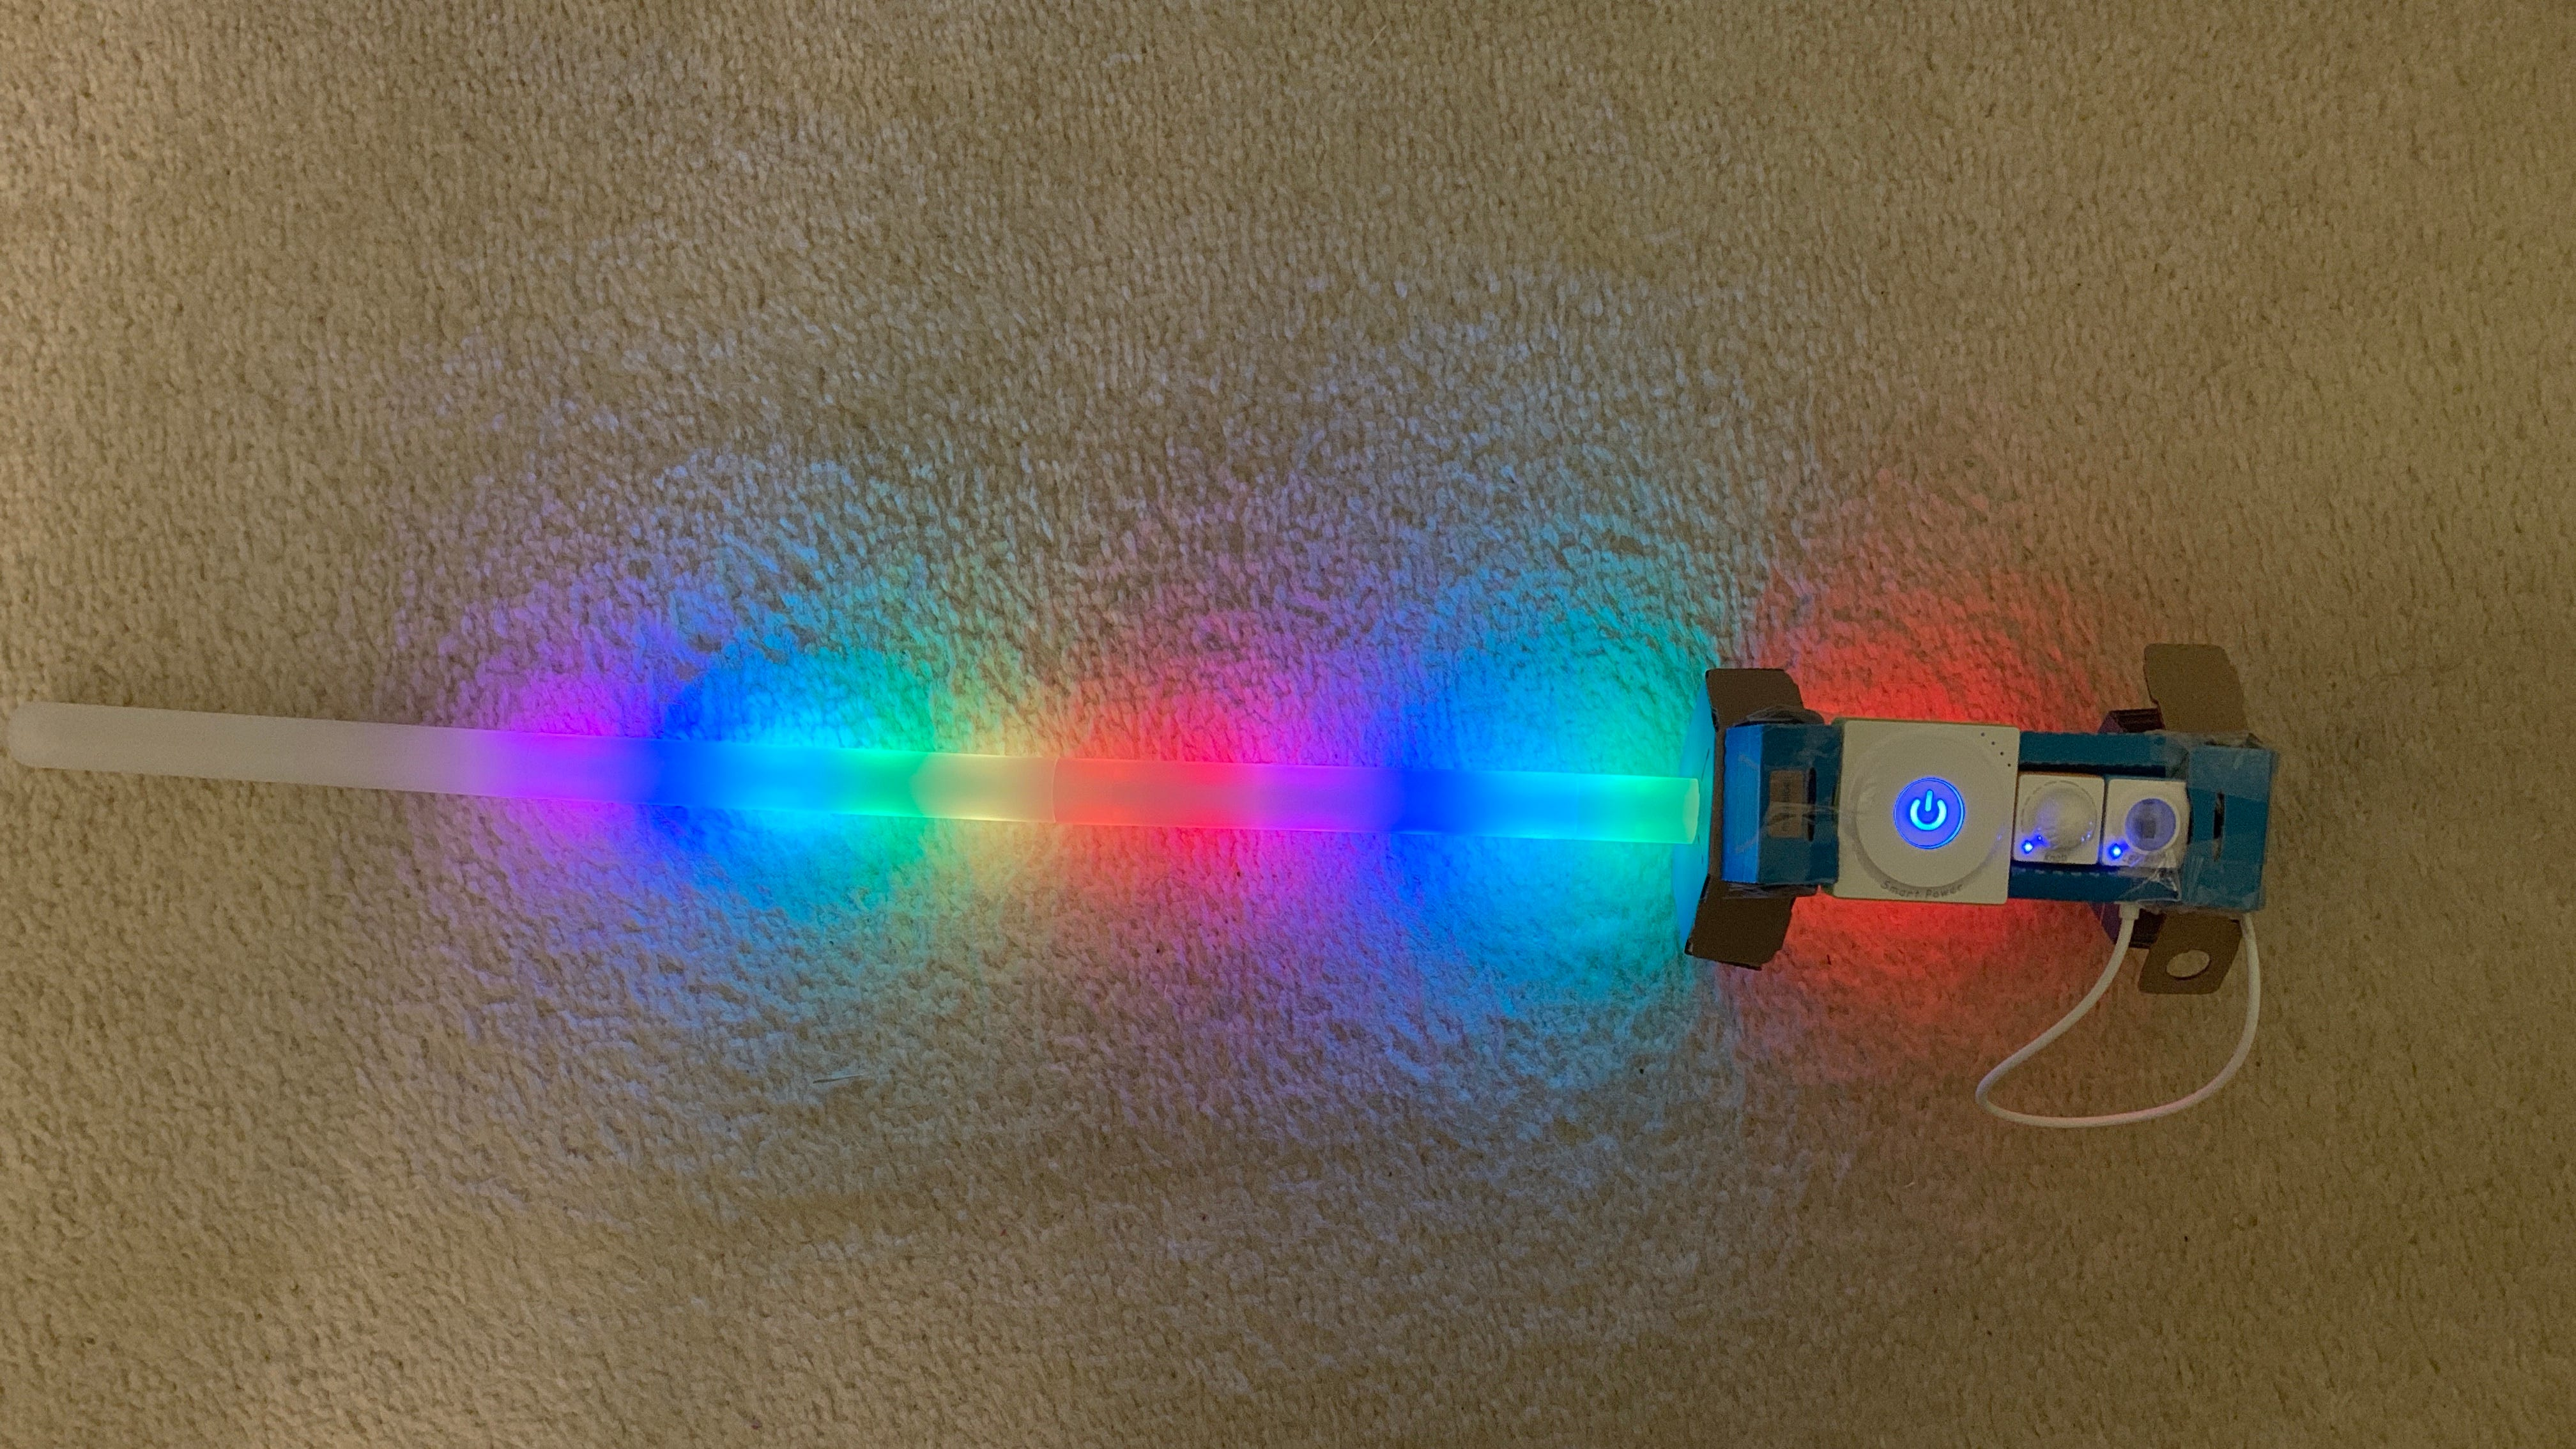 A Finished Example of a LED Sword From The Makeblock Neuron Explorer Kit